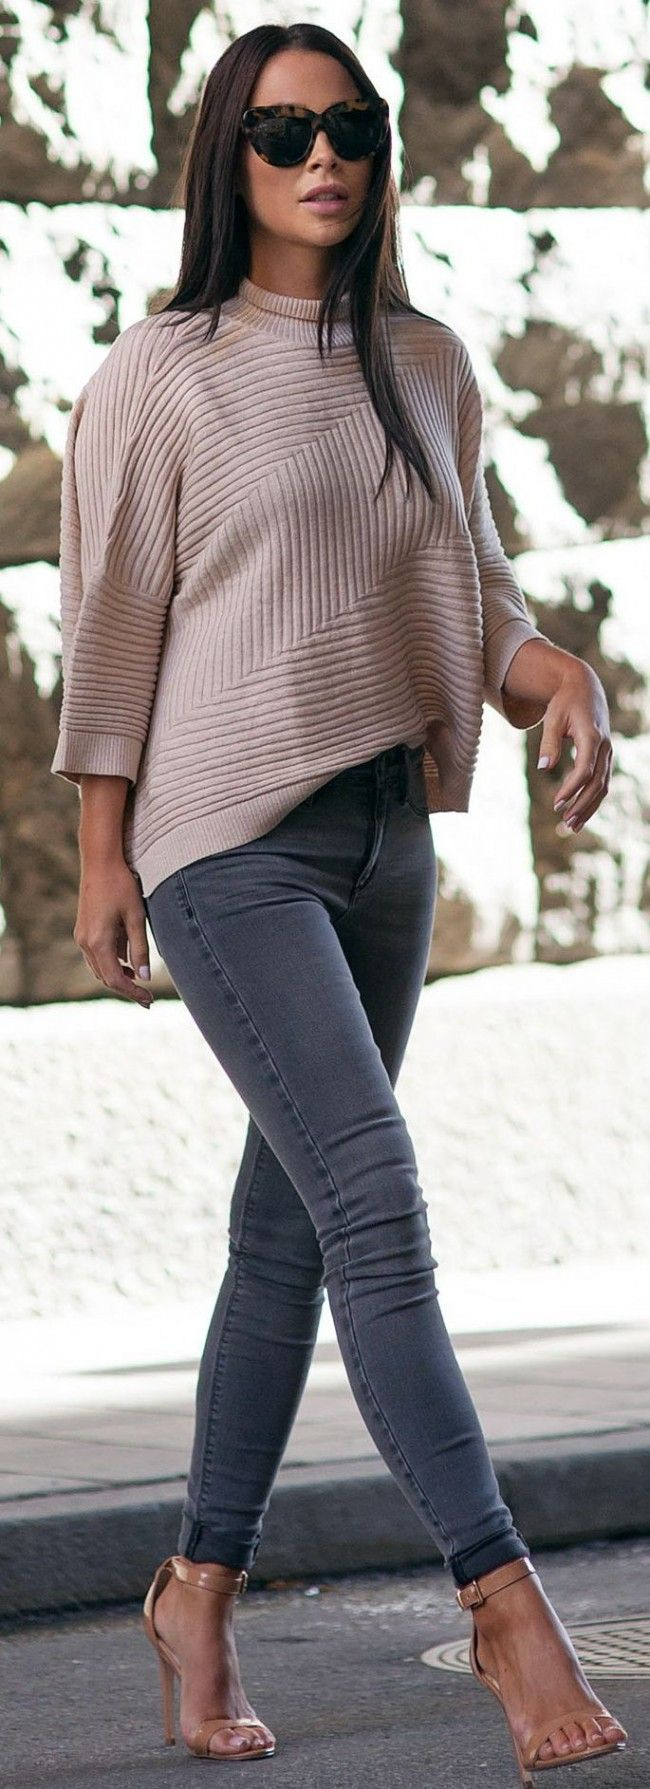 Street Fashion Inspiration | River Island Molly Jeans, Knitted Sweater #river